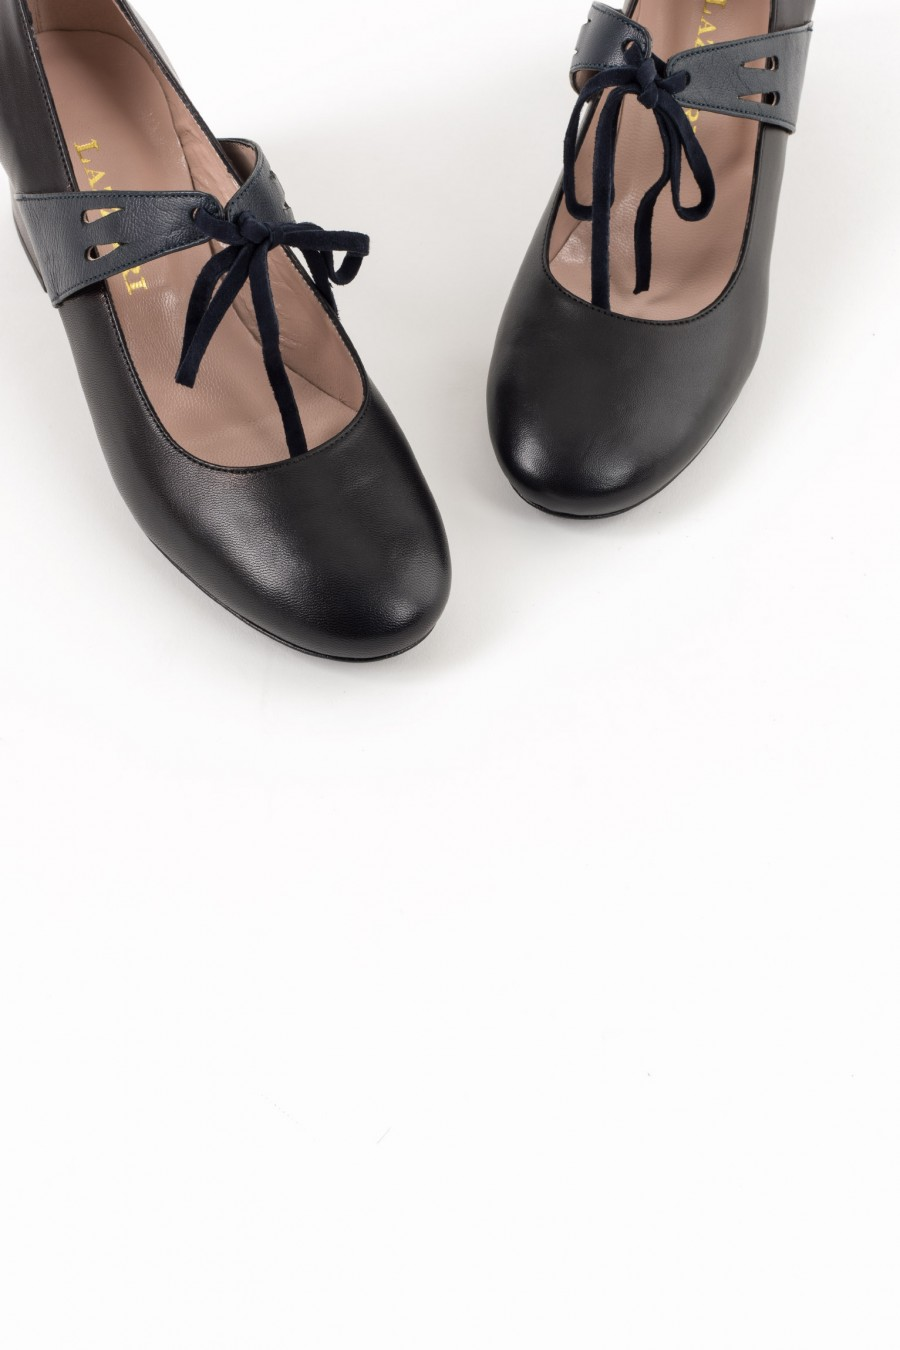 Black leather bebè shoes with blue suede ribbons